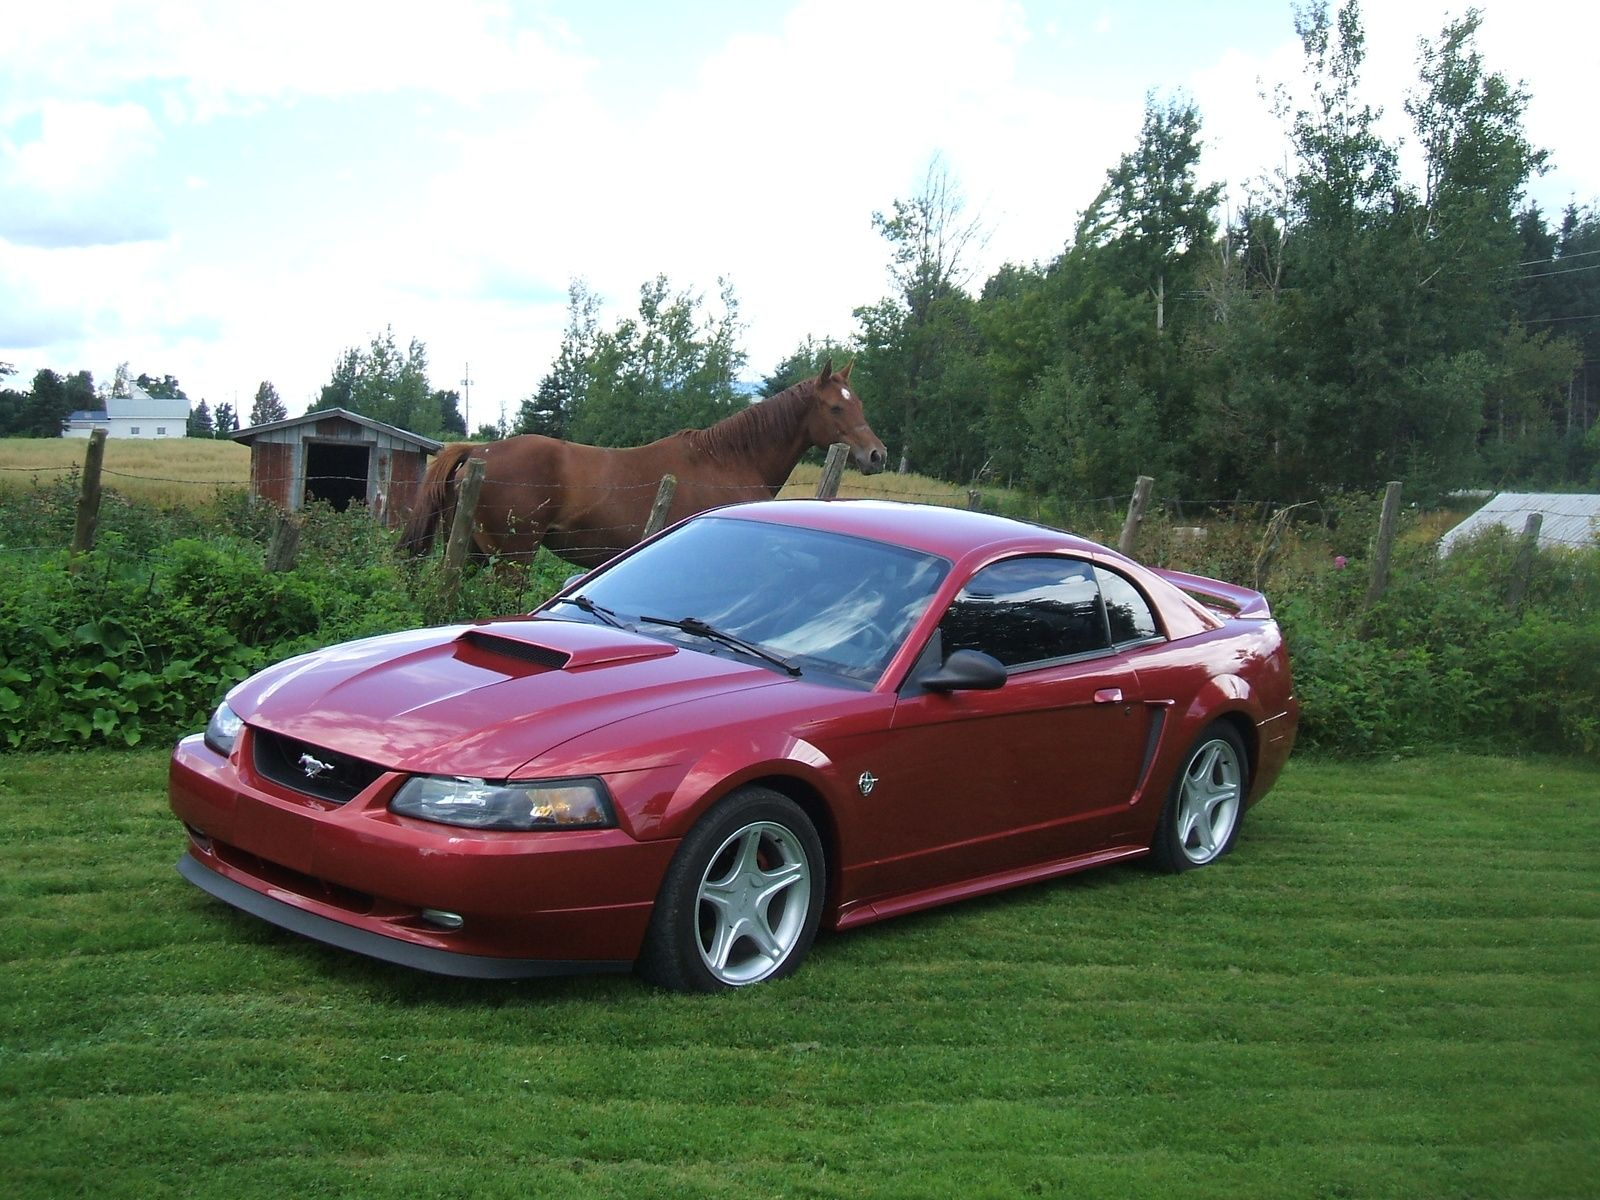 Ford mustang 1999 ford mustang gt coupe pictures 1999 ford mustang 2 dr